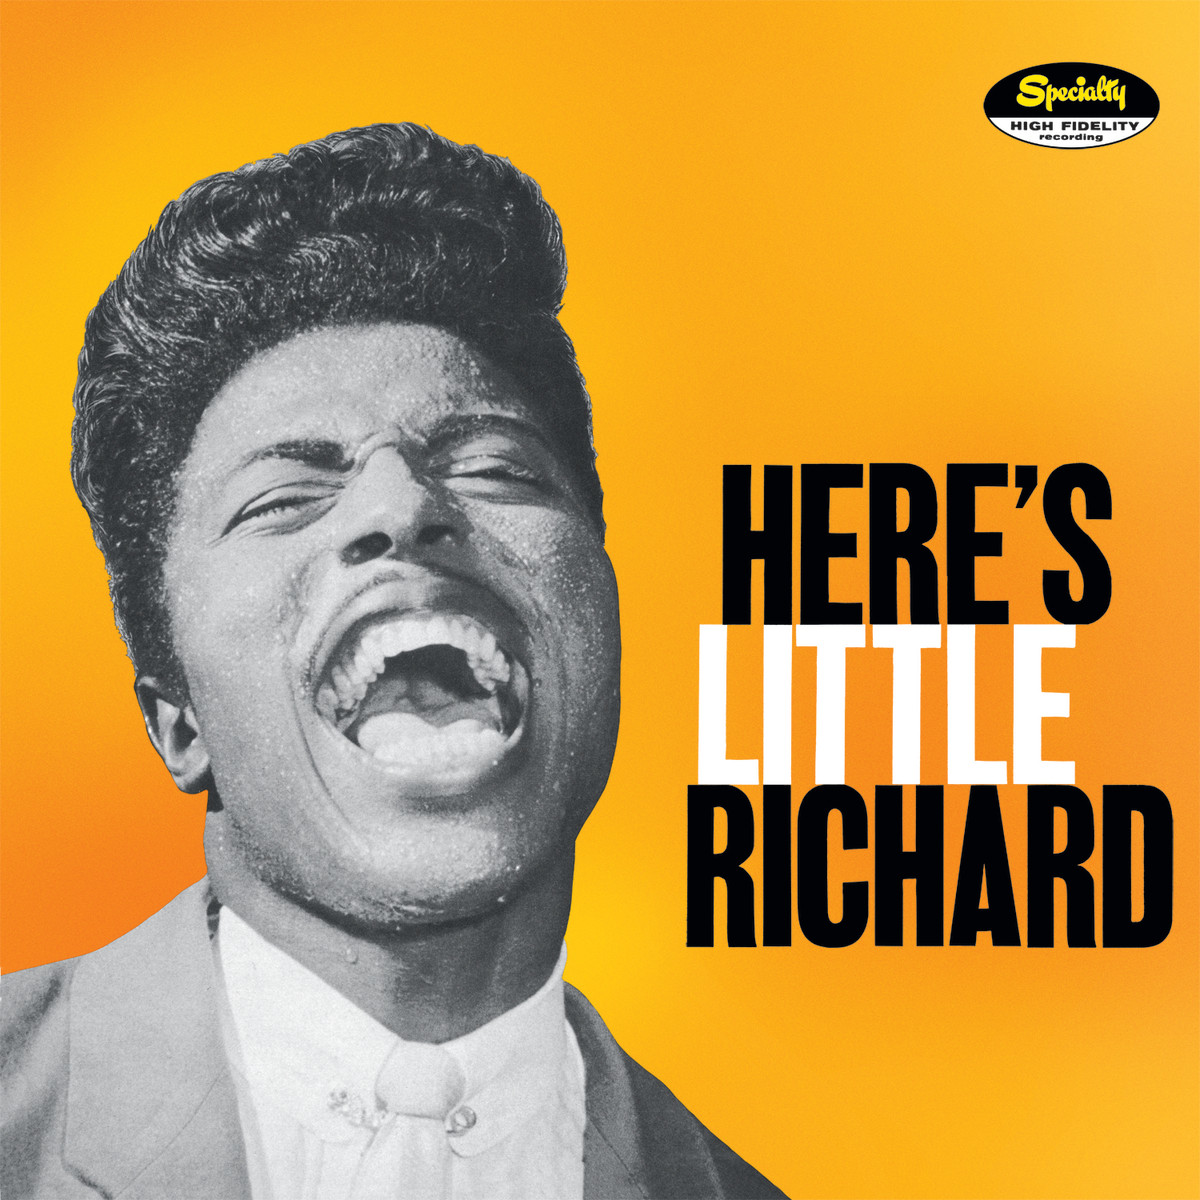 "Little Richard ""Here's Little Richard"" Specialty Records SP-!00 12"" LP Vinyl Record (1957) US Pressing"